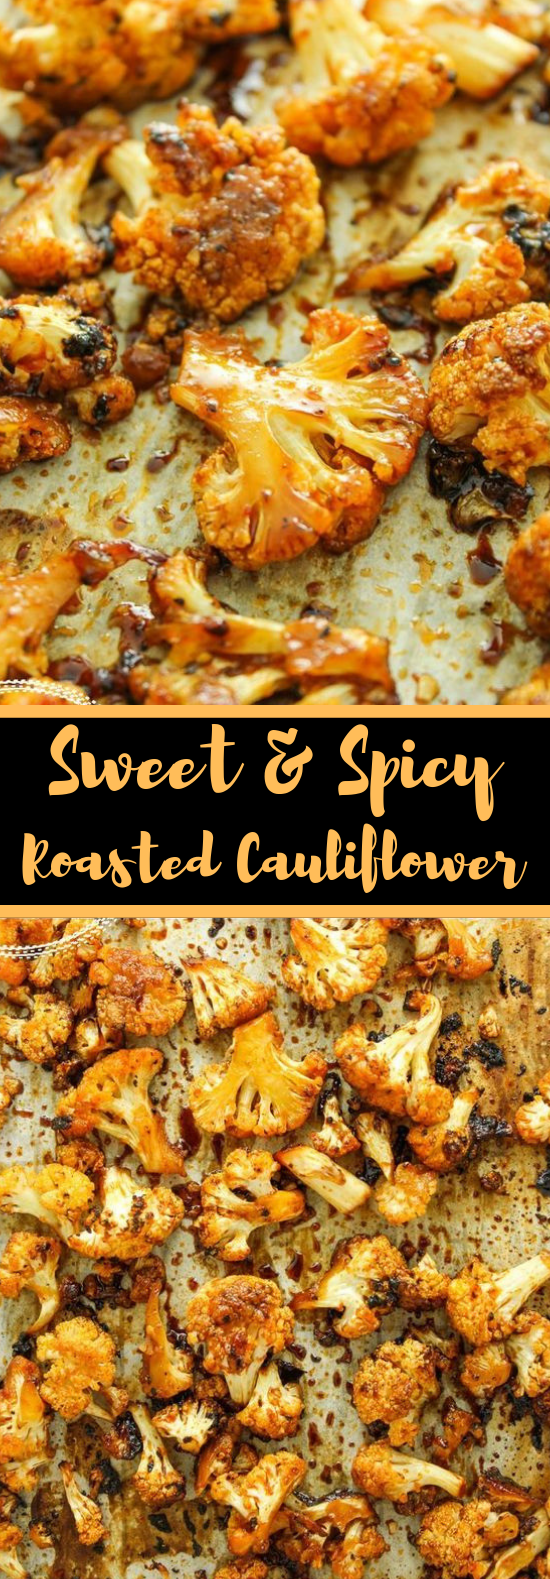 Sweet and Spicy Baked Cauliflower #vegetarian #cauliflower #vegetables #baked #noodle